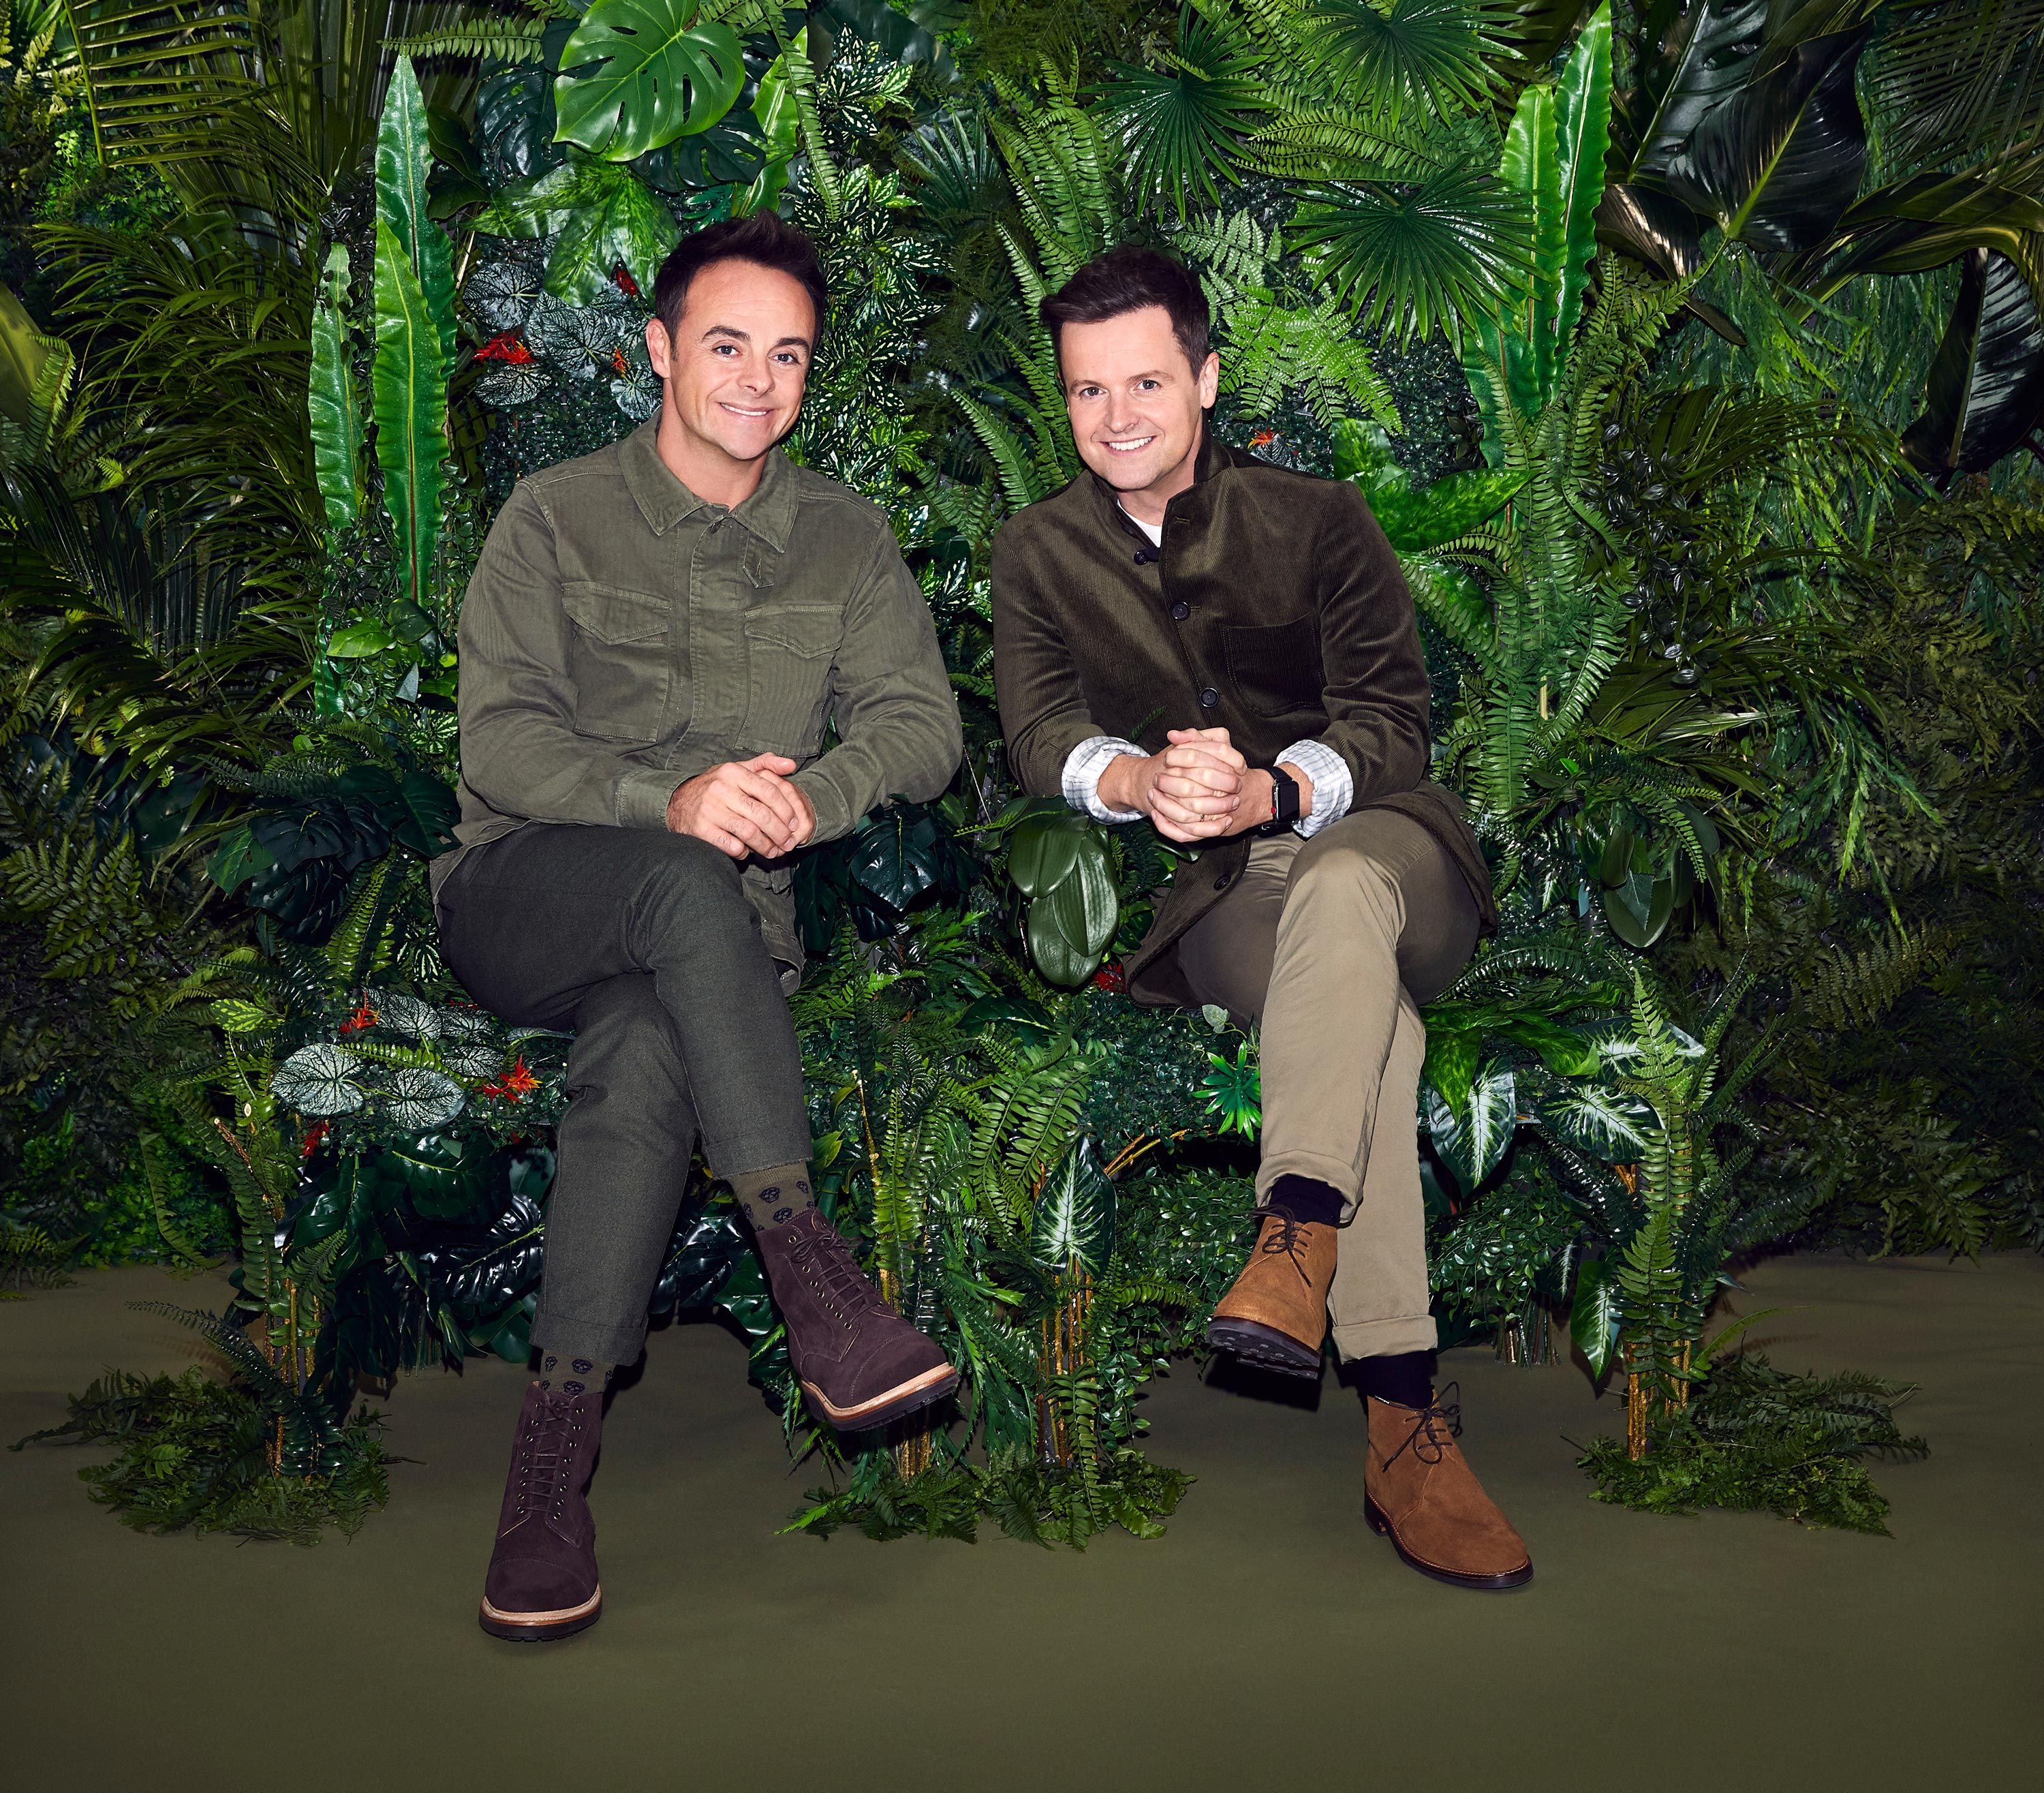 I'm a Celebrity 2019's final date confirmed by ITV